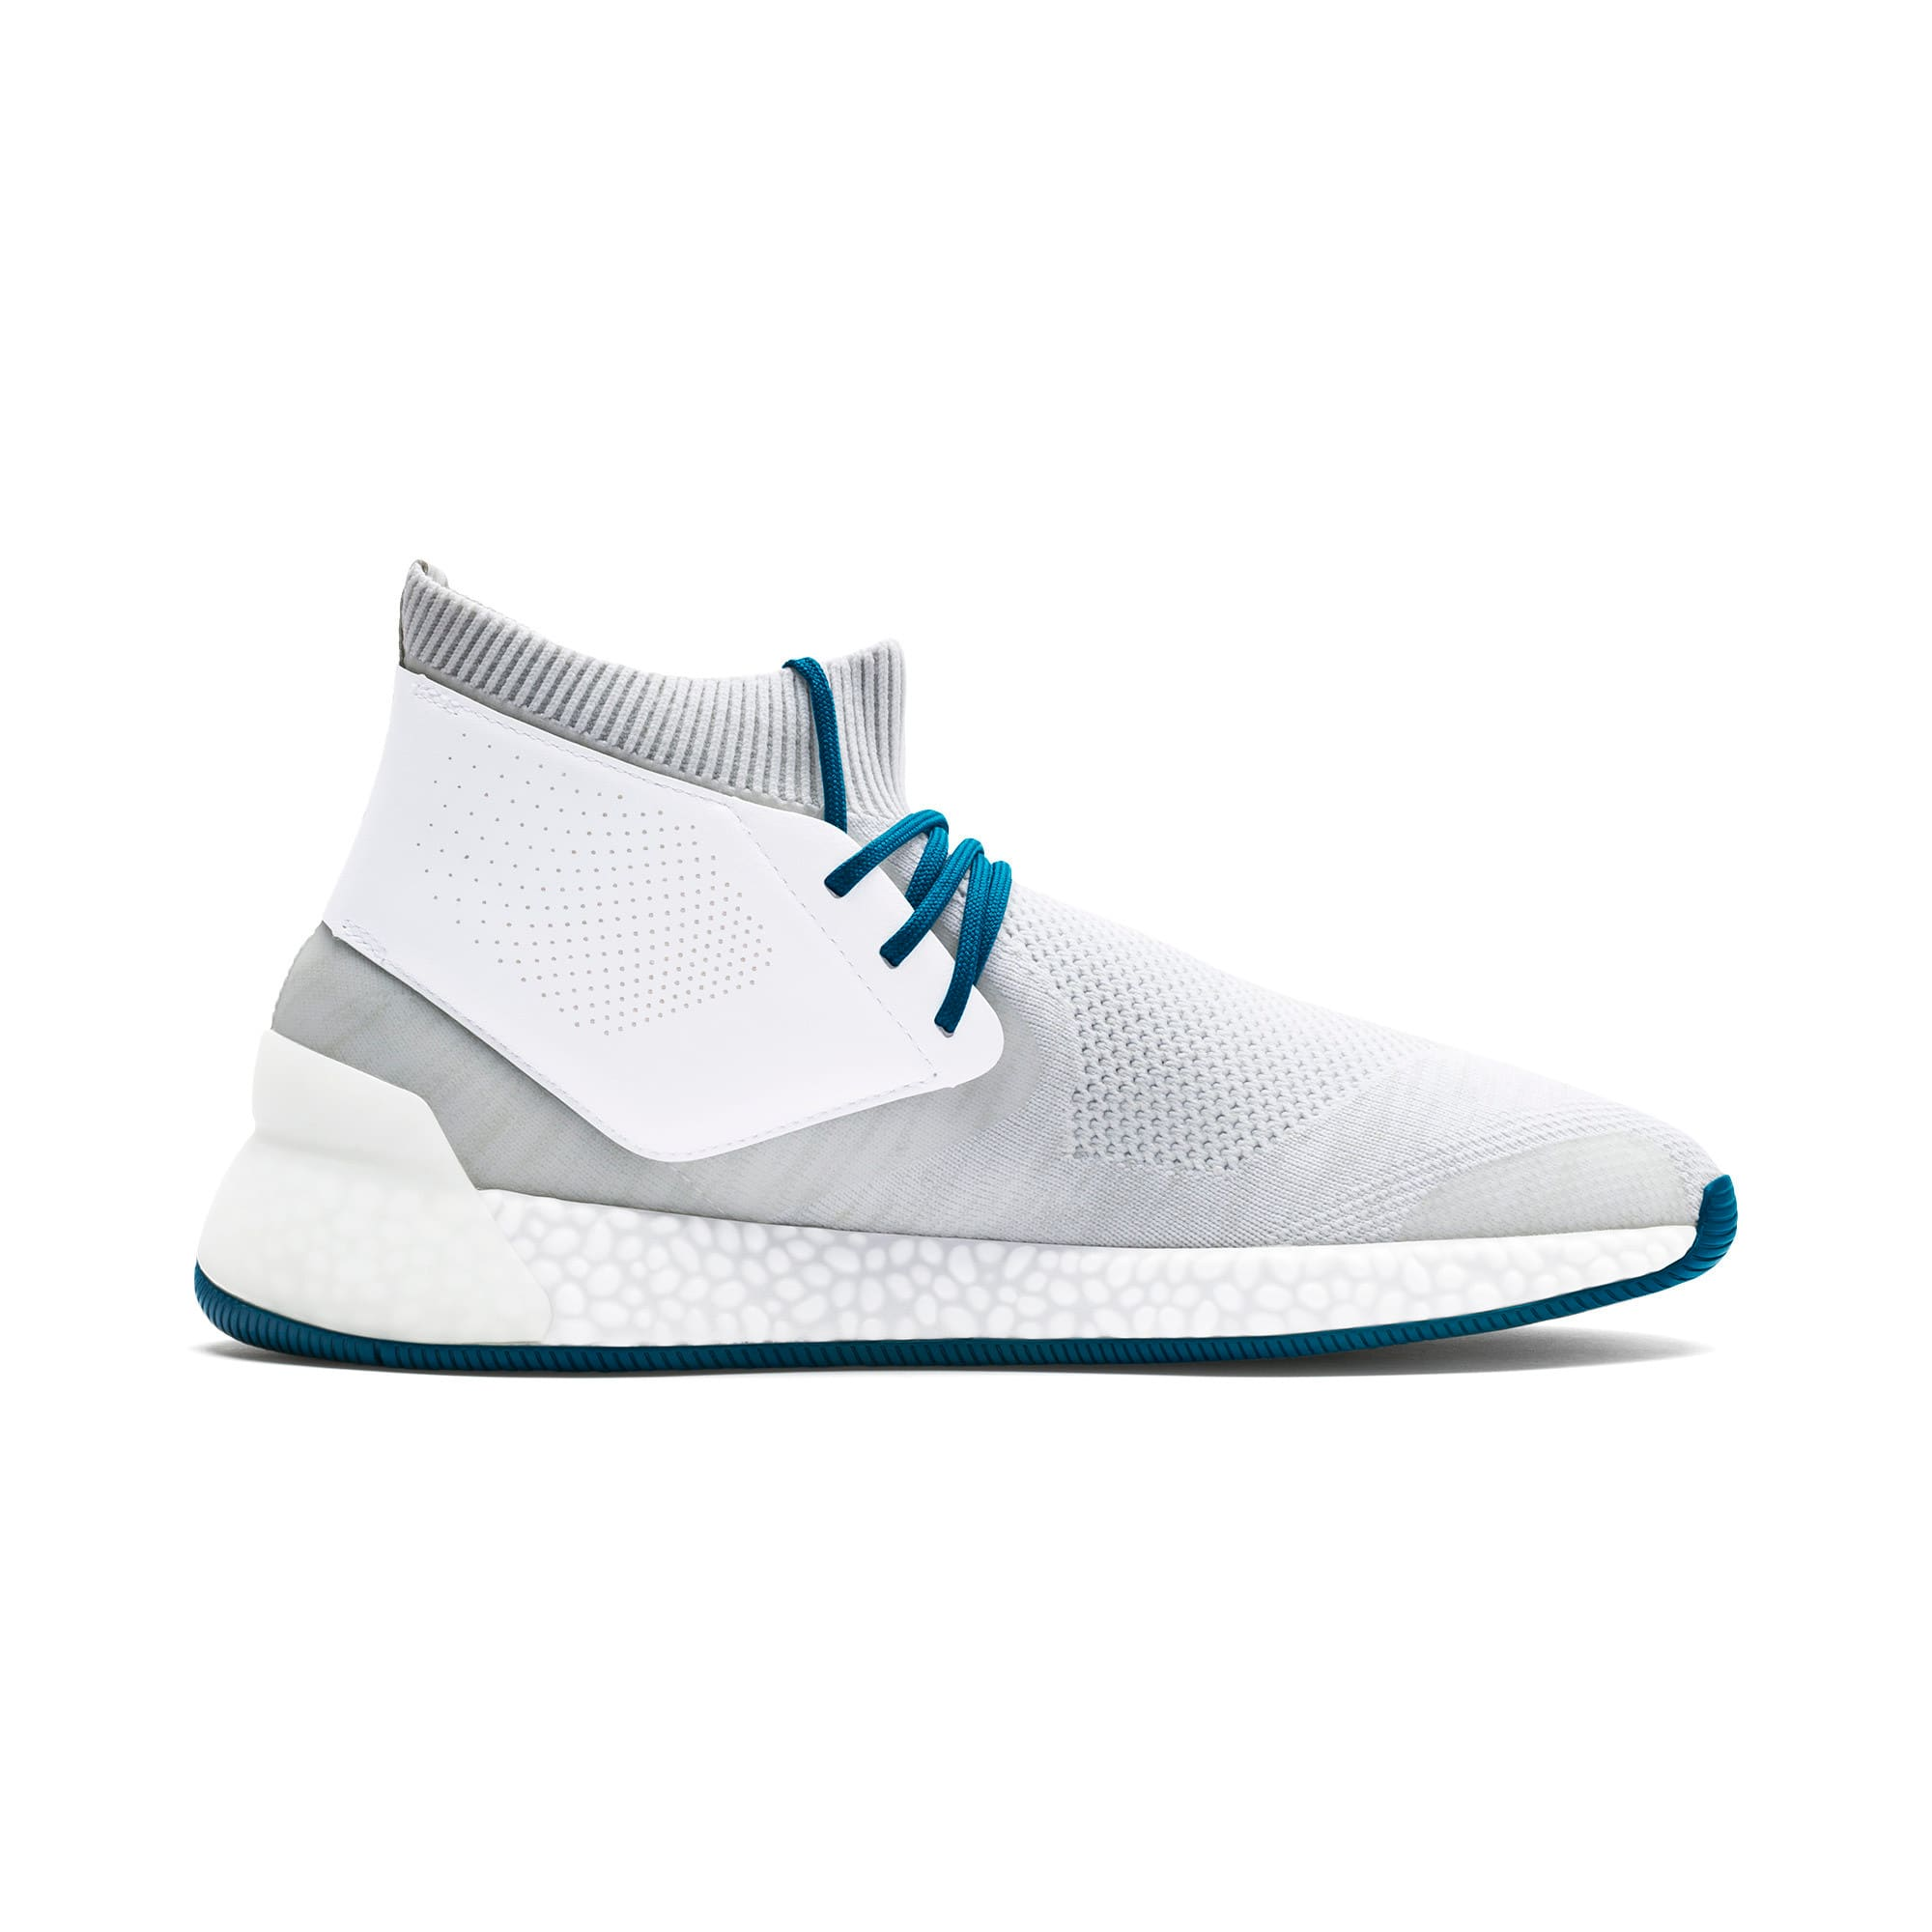 Thumbnail 6 of Porsche Design Hybrid evoKNIT Men's Trainers, White-Gray-Moroccan Blue, medium